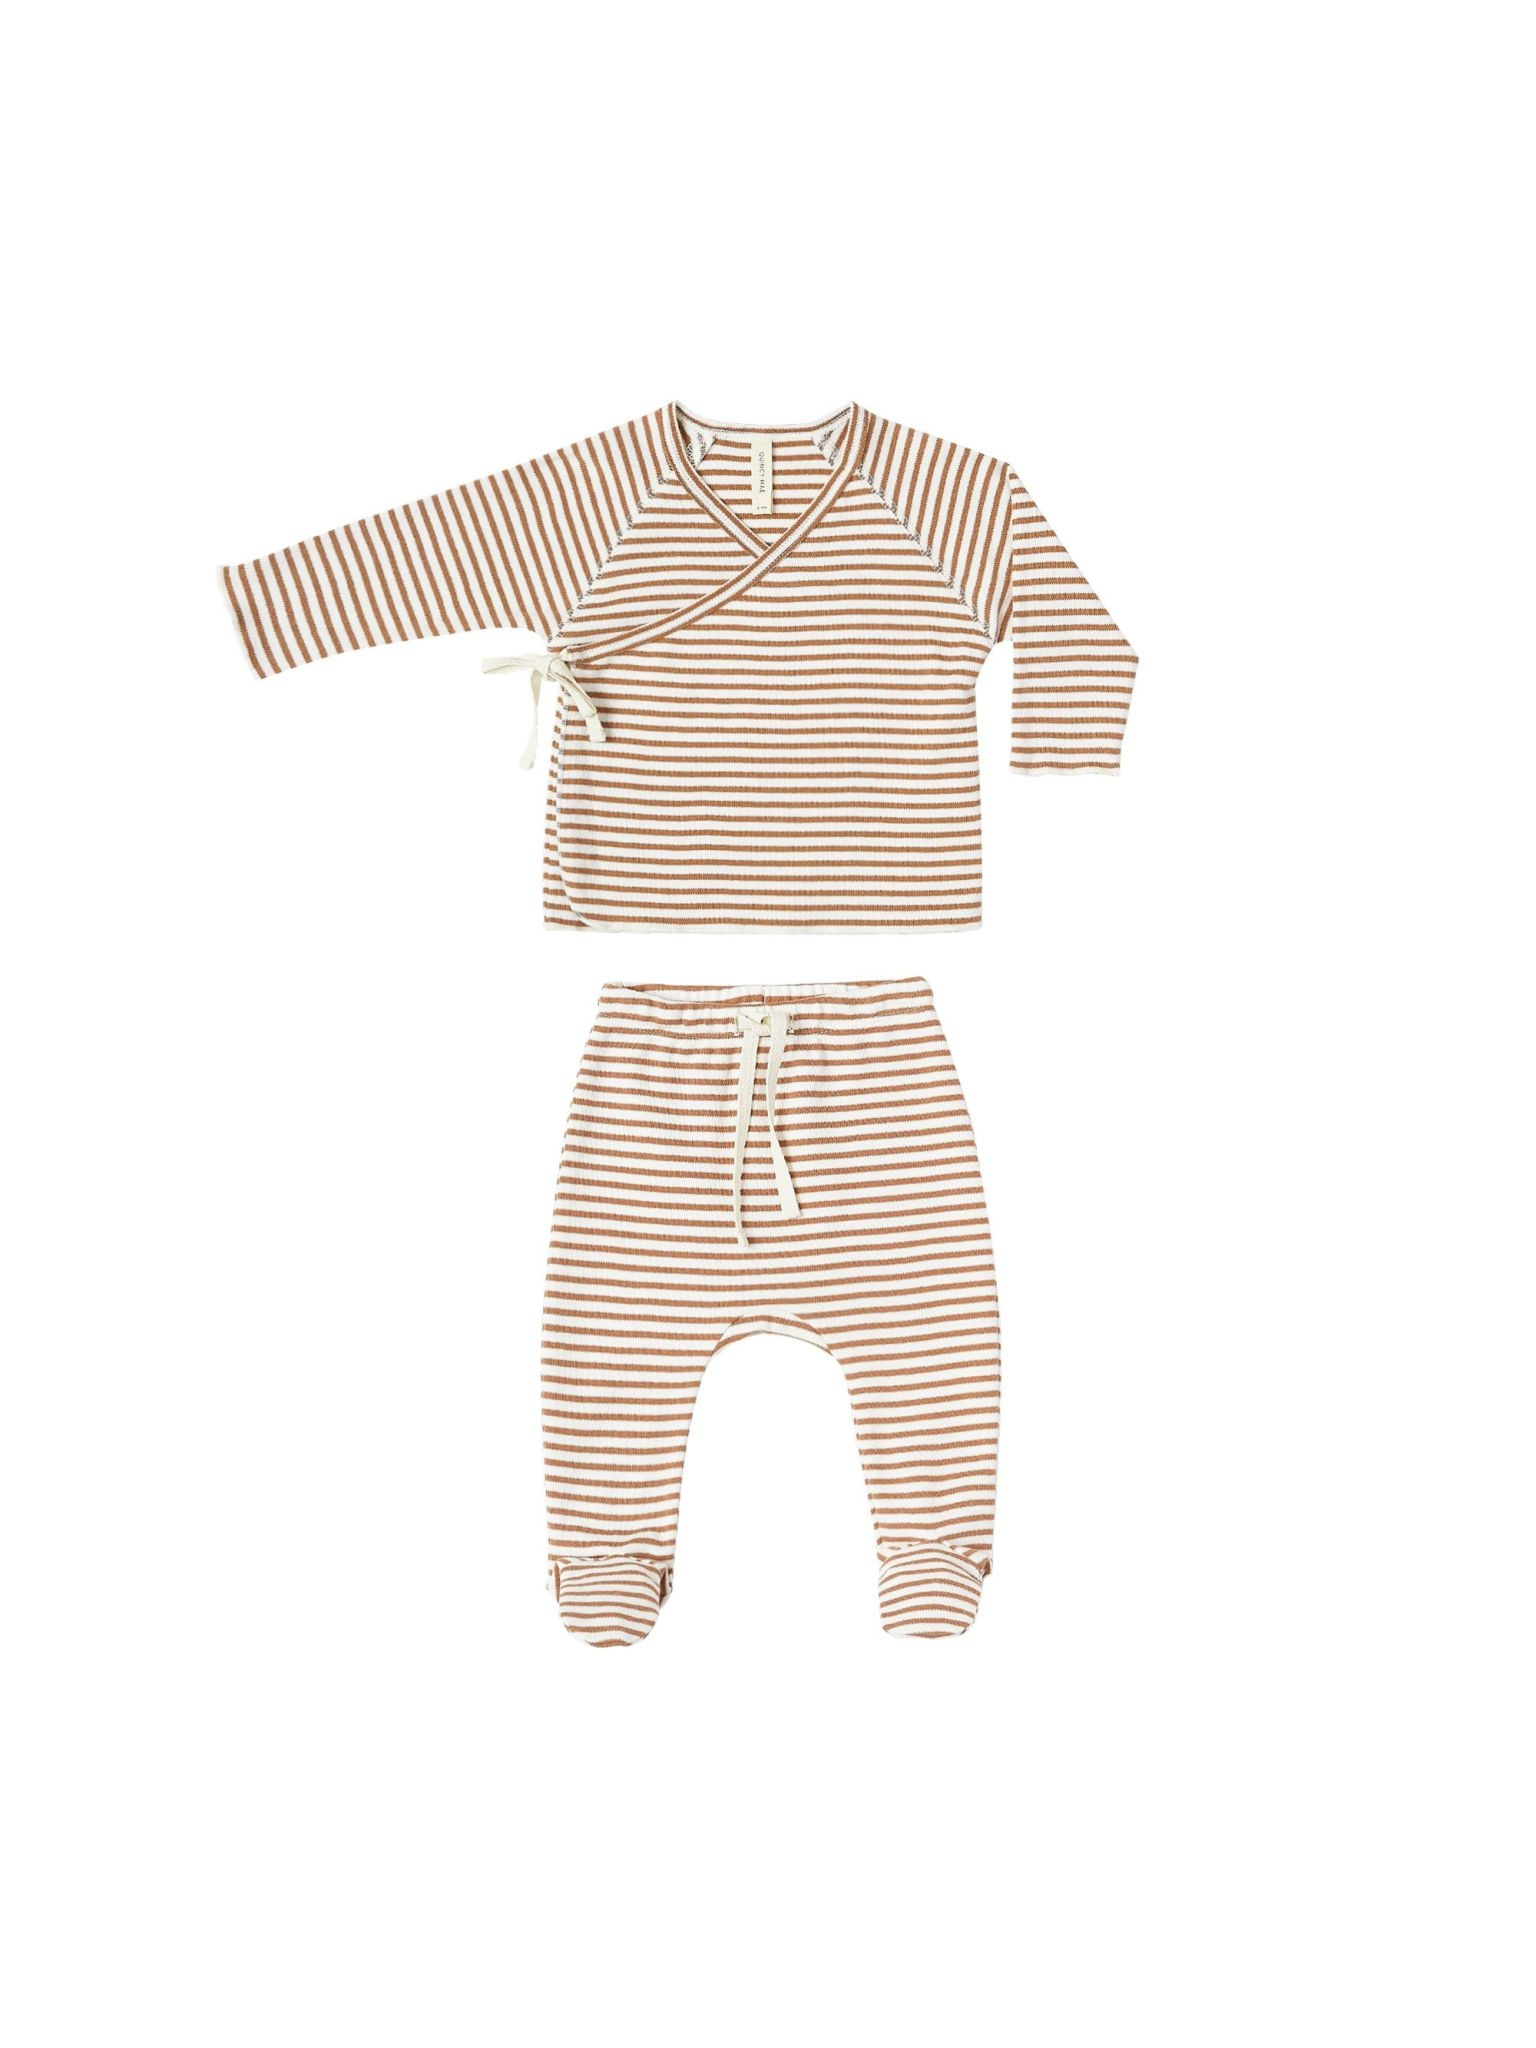 QUINCY MAE Organic Brushed Jersey Kimono Top and Footed Pant Set